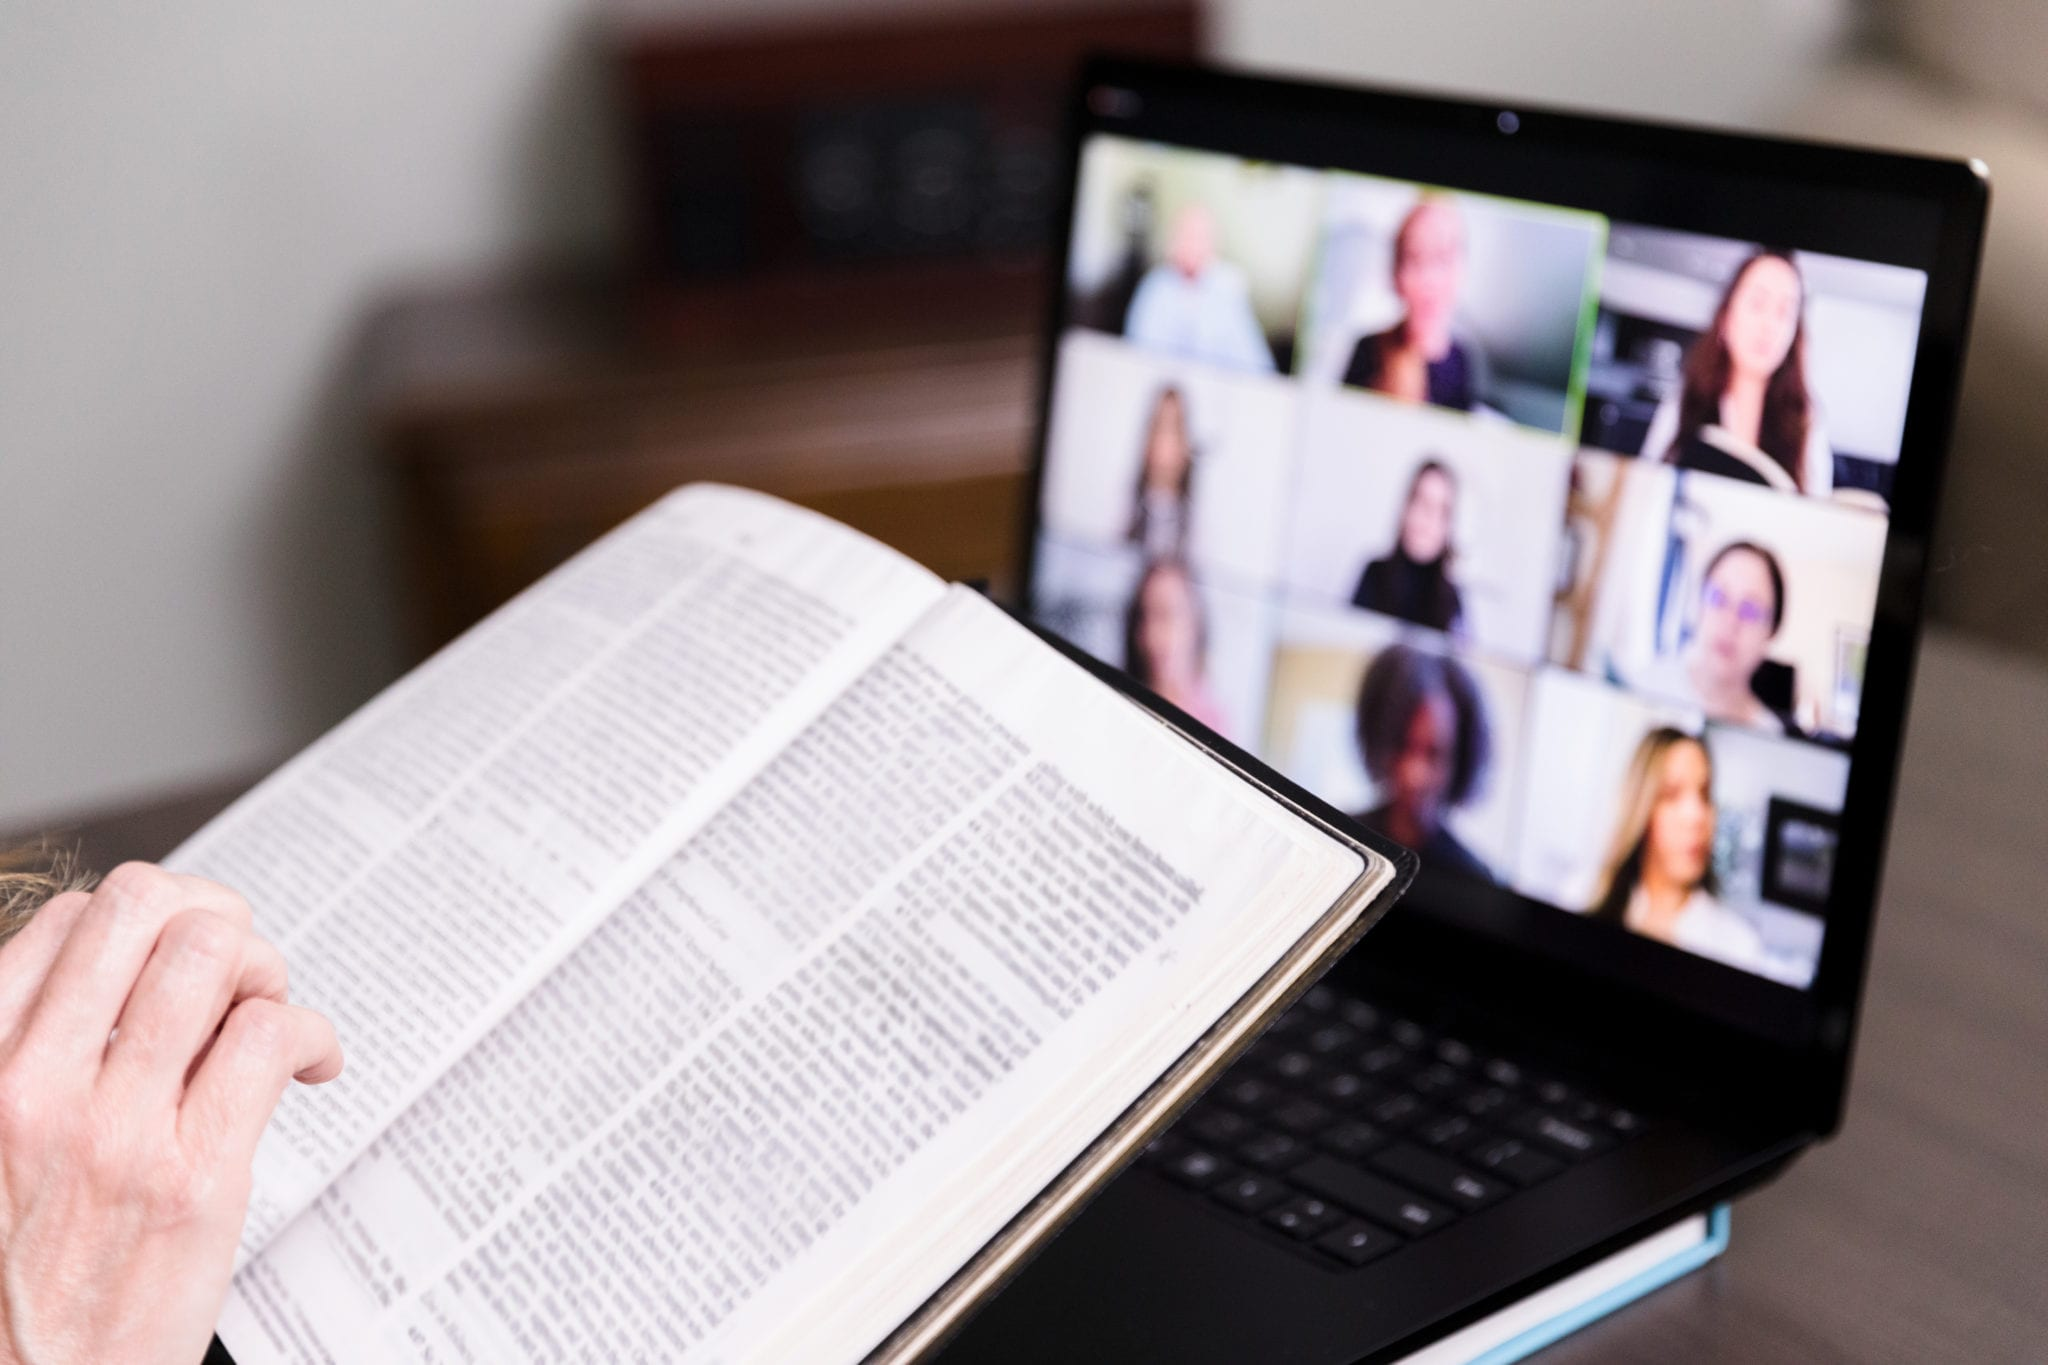 Unseen person joins Bible study through video conferencing